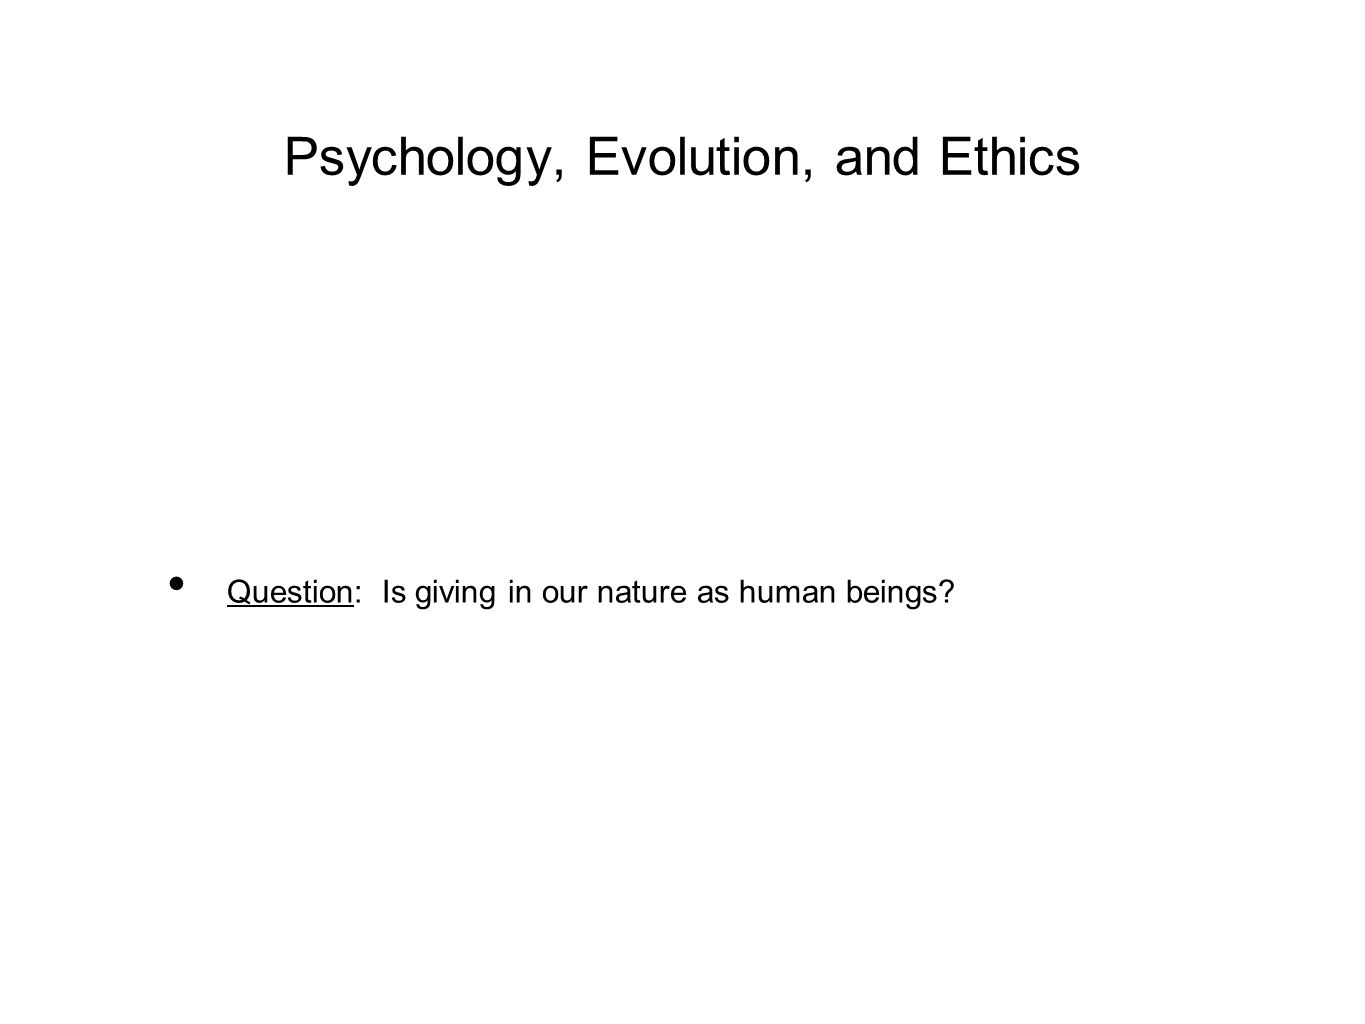 Psychology, Evolution, and Ethics Question: Is giving in our nature as human beings